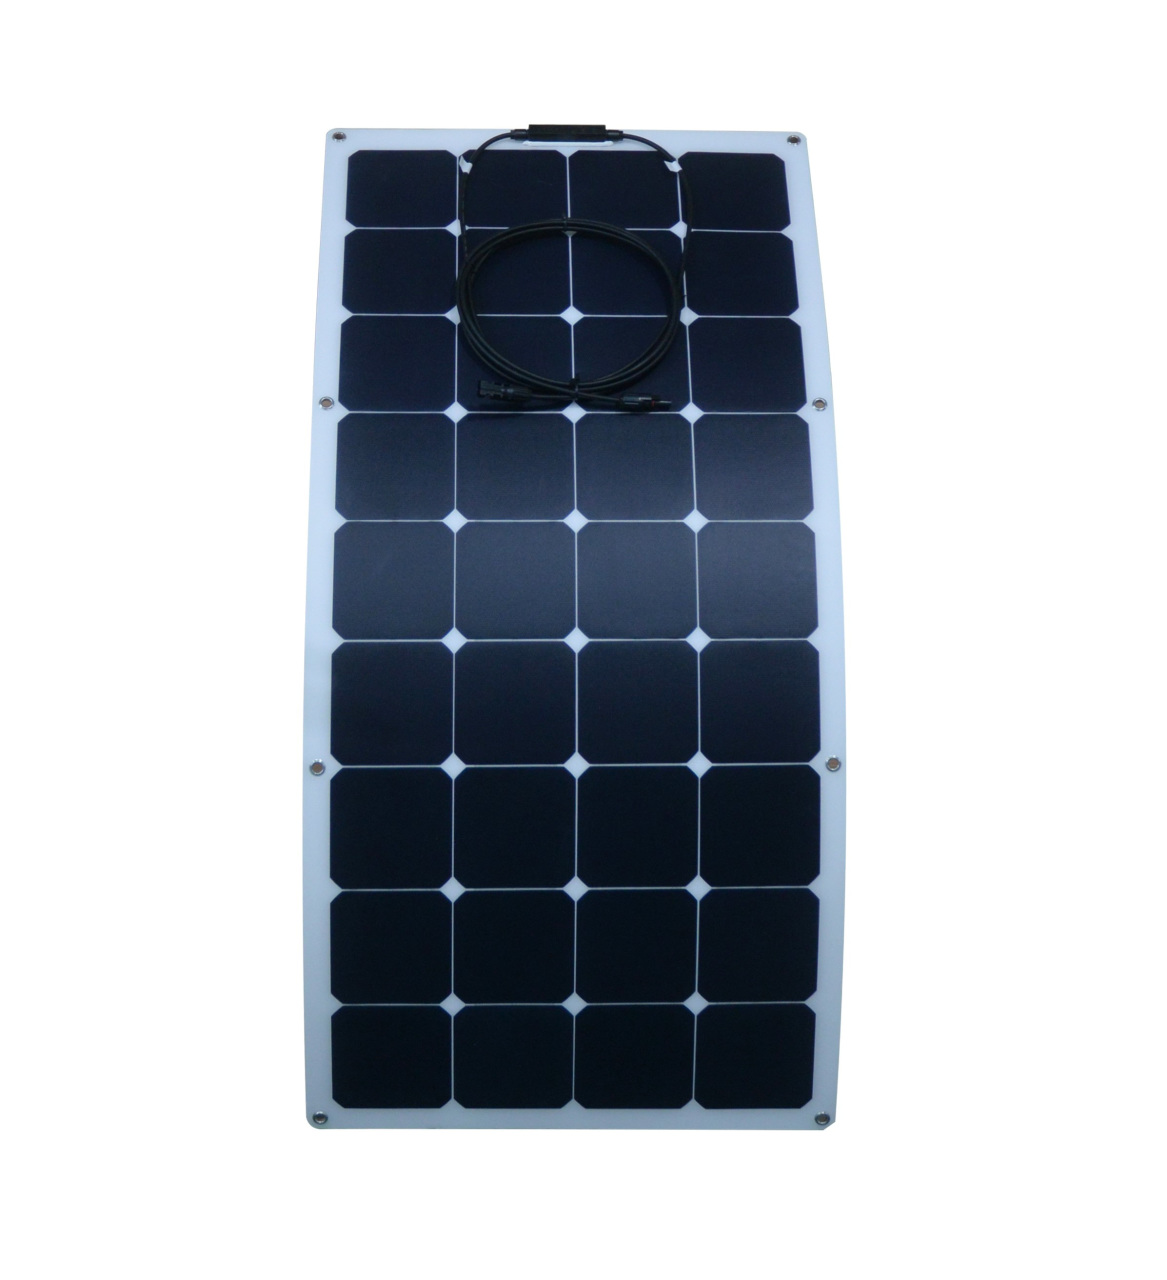 High Efficiency Marine Solar Panels For Your Boat  Free help with